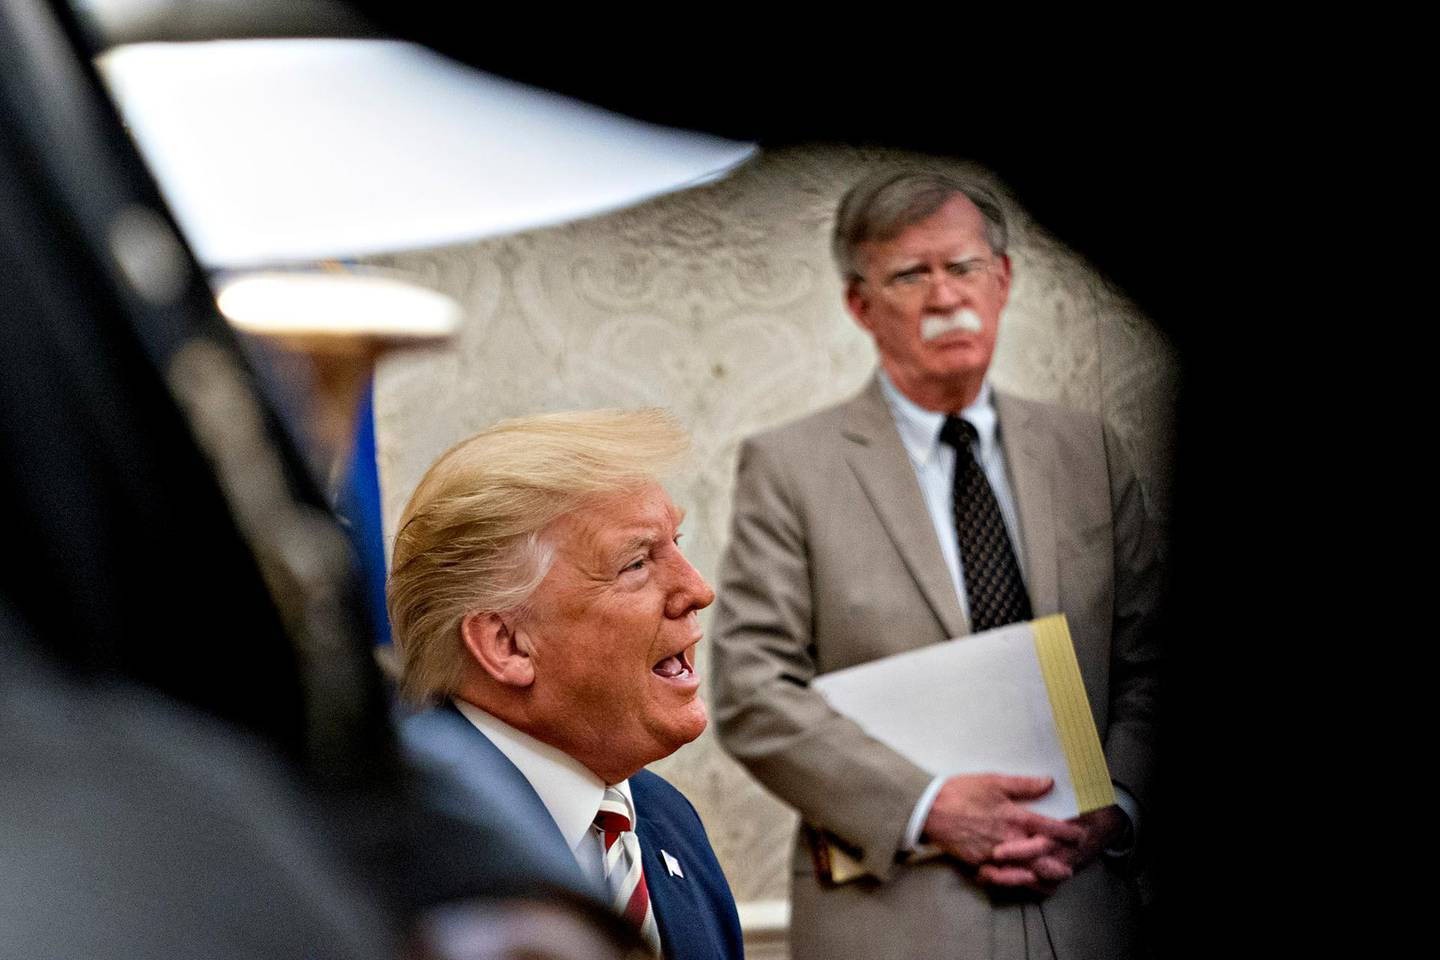 epa08493524 (FILE) - US President Donald Trump speaks as John Bolton, national security advisor, listens during his meeting with Klaus Iohannis, Romania's president, not pictured, in the Oval Office of the White House in Washington, DC, USA, 20 August 2019 (reissued 18 June 2020). According to media reports, the US government wants to prevent publication of a book by former National Security advisor Bolton, arguing that national security was at risk.  EPA/Andrew Harrer / POOL *** Local Caption *** 55406002